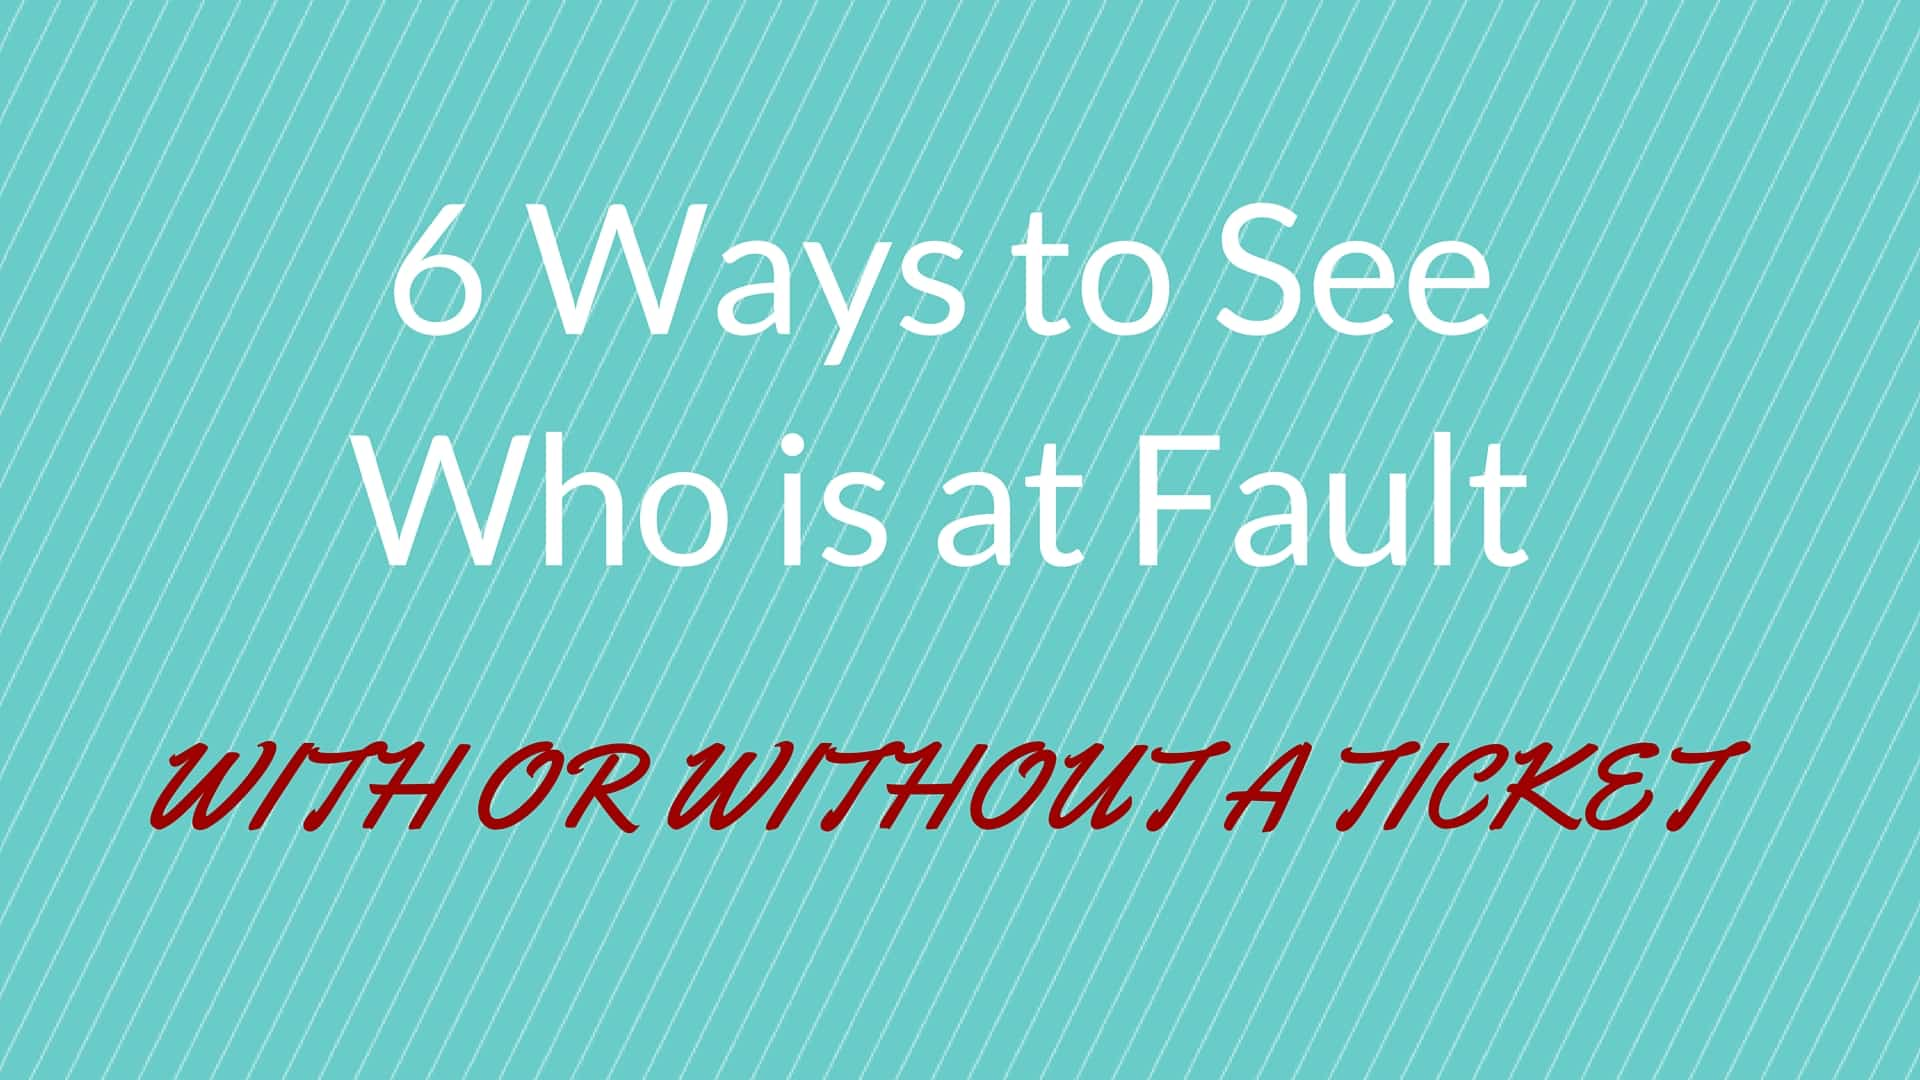 6 Ways to See Who is At-Fault